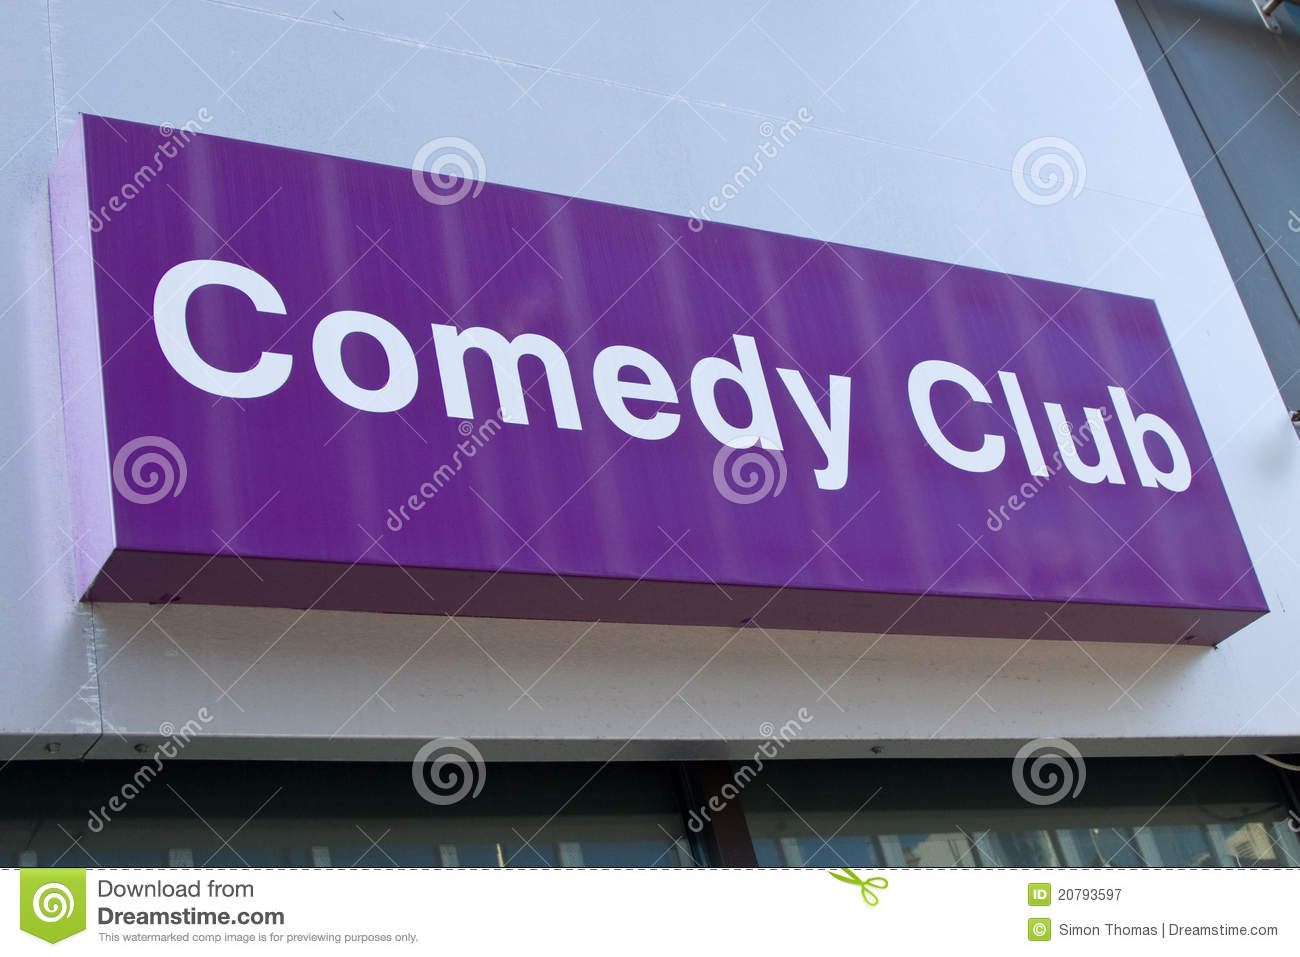 Comedy Club Sign Royalty Free Stock Photography  Image. Intracellular Signs Of Stroke. Irritation Signs. Unique Event Signs. Suffer Signs. Untreated Signs. Ibs Symptoms Signs. Infarct Volume Signs. February 8th Signs